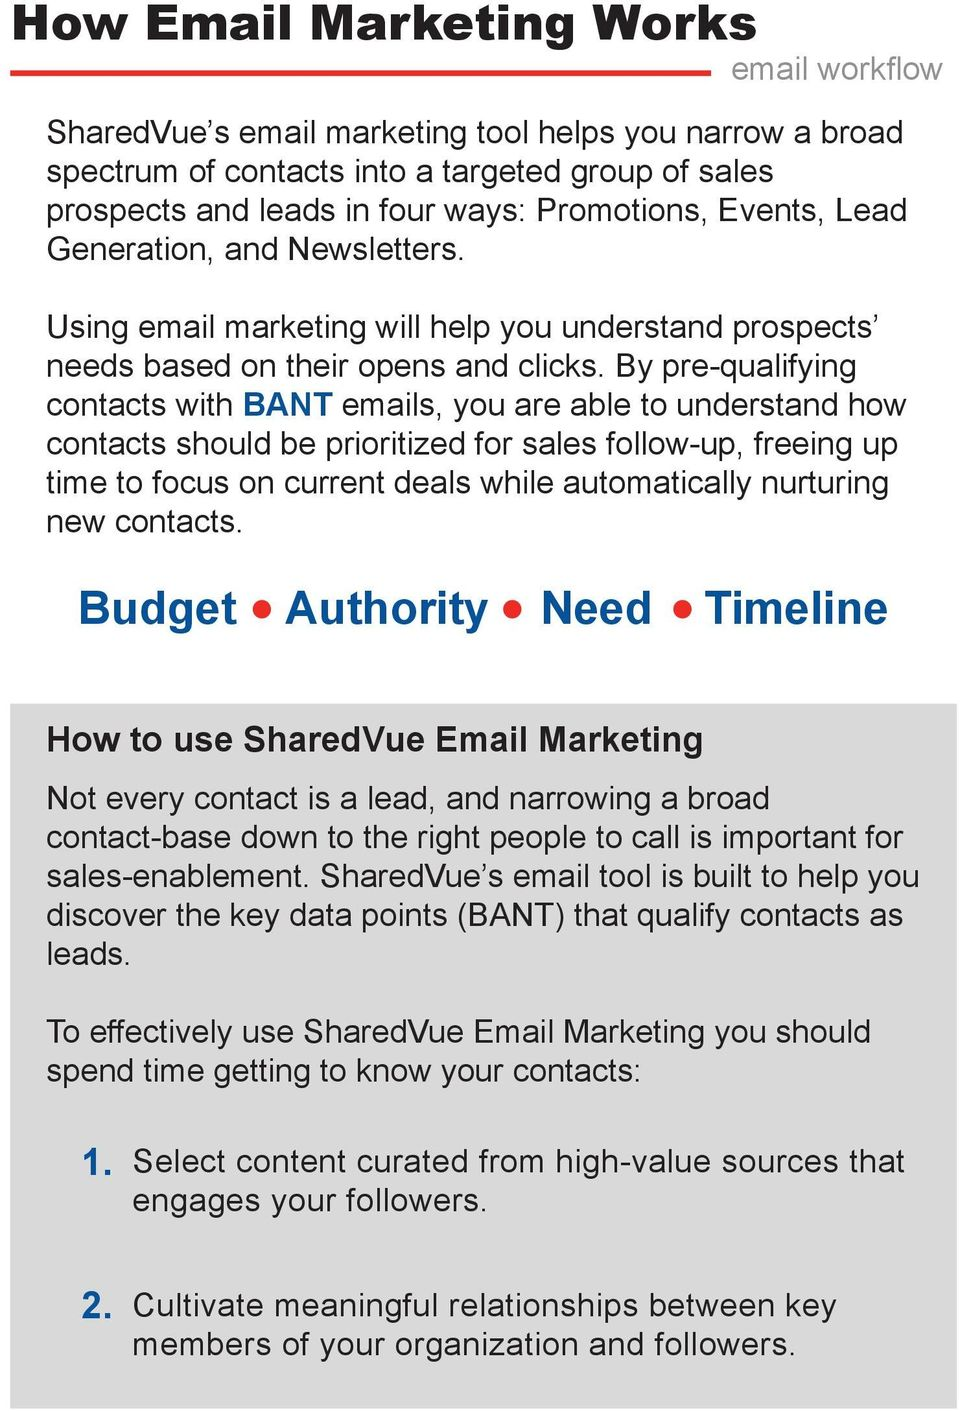 By pre-qualifying contacts with BANT emails, you are able to understand how contacts should be prioritized for sales follow-up, freeing up time to focus on current deals while automatically nurturing